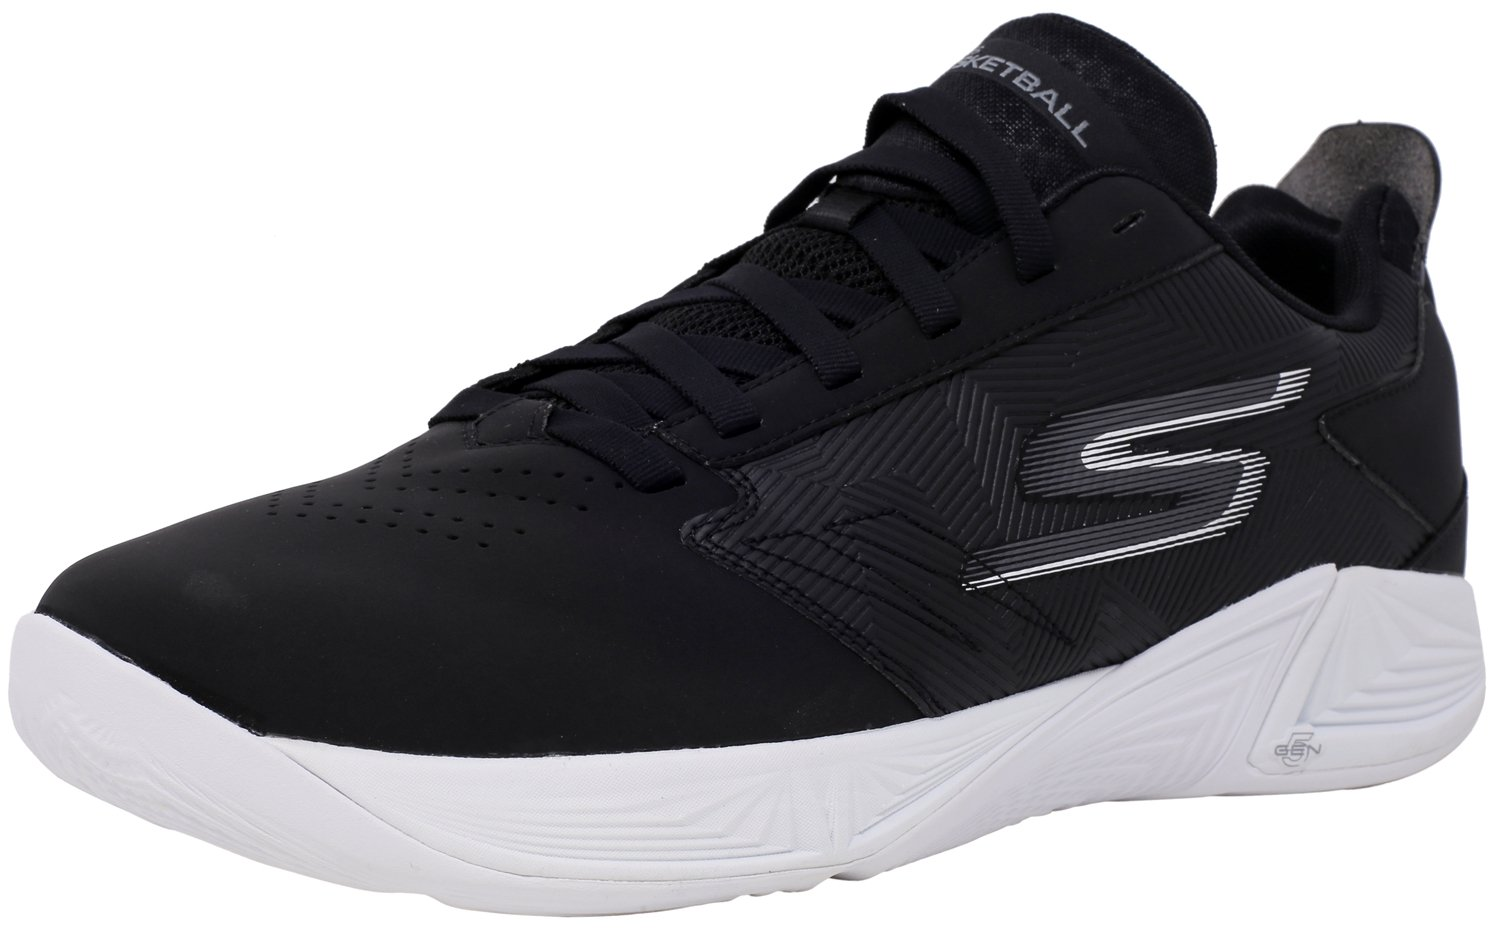 999a11eac667 Galleon - Skechers Men s Torch - Lt Black White Ankle-High Basketball Shoe  9.5M